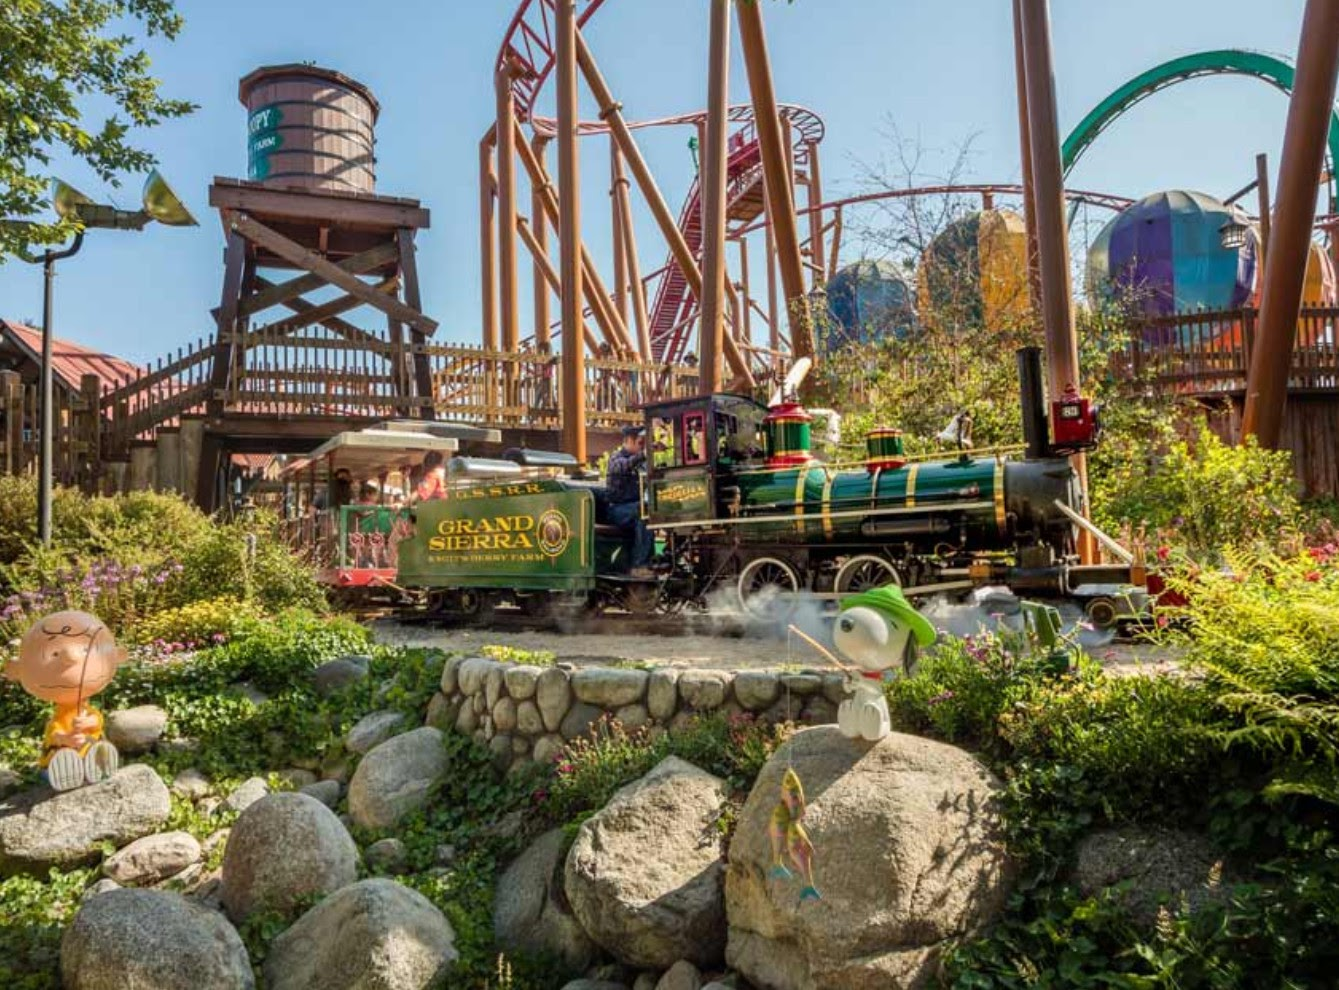 Knott S Berry Farm Vice President And General Manager Gives Update On Park Events And Operation Laughingplace Com